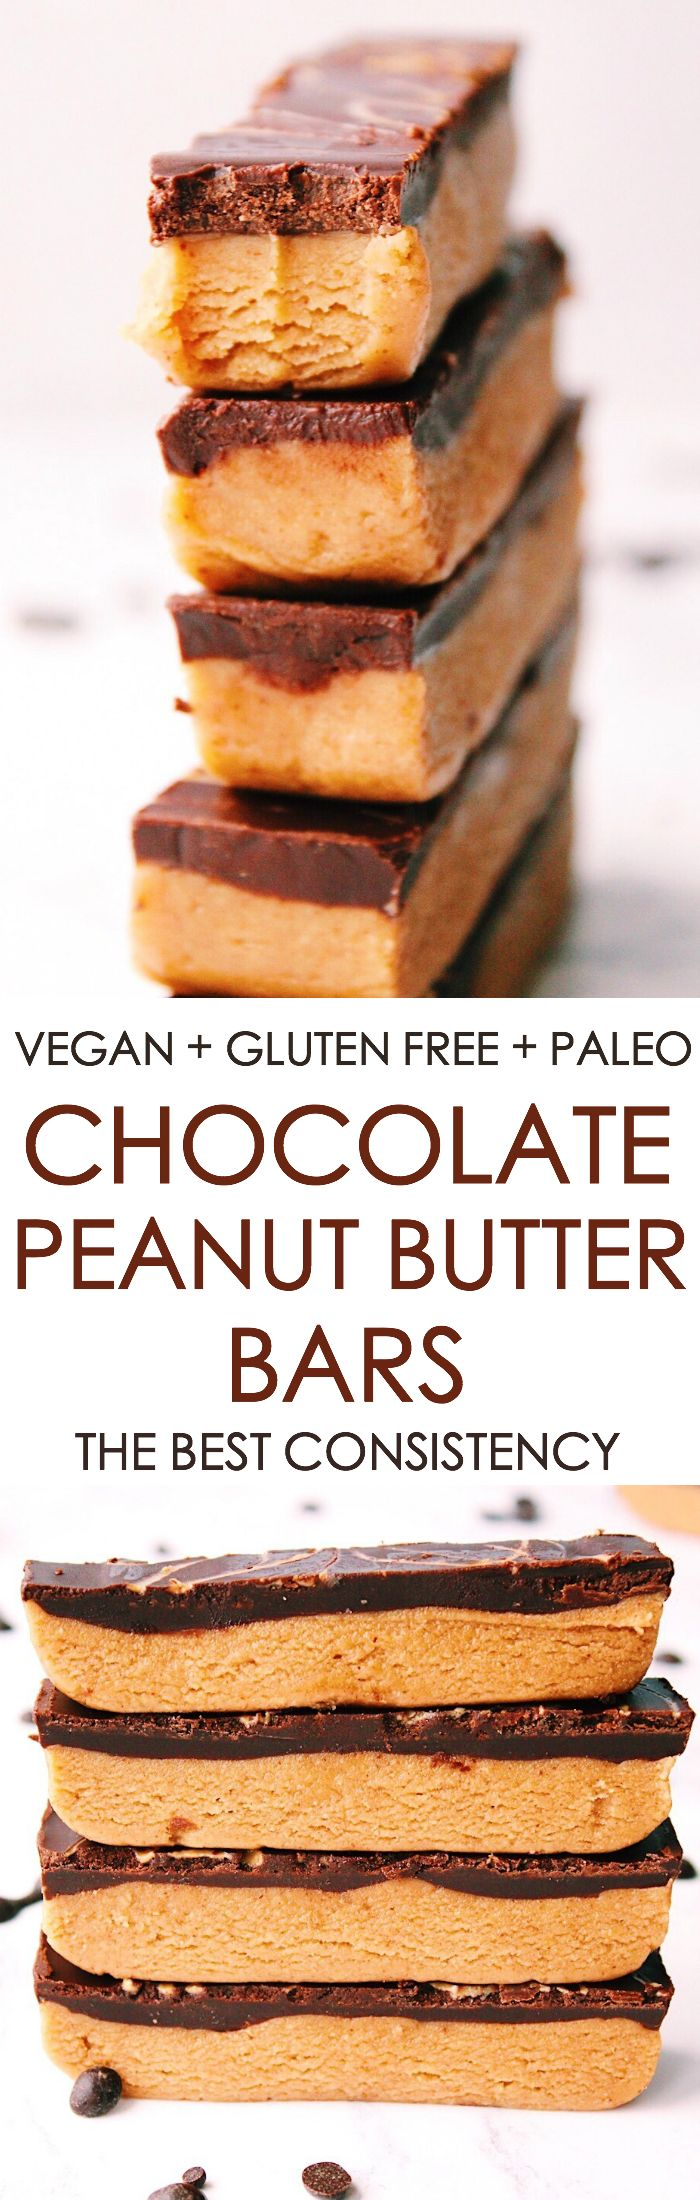 The most delicious chocolate peanut butter bars - totally #vegan #glutenfree + #paleo ✌